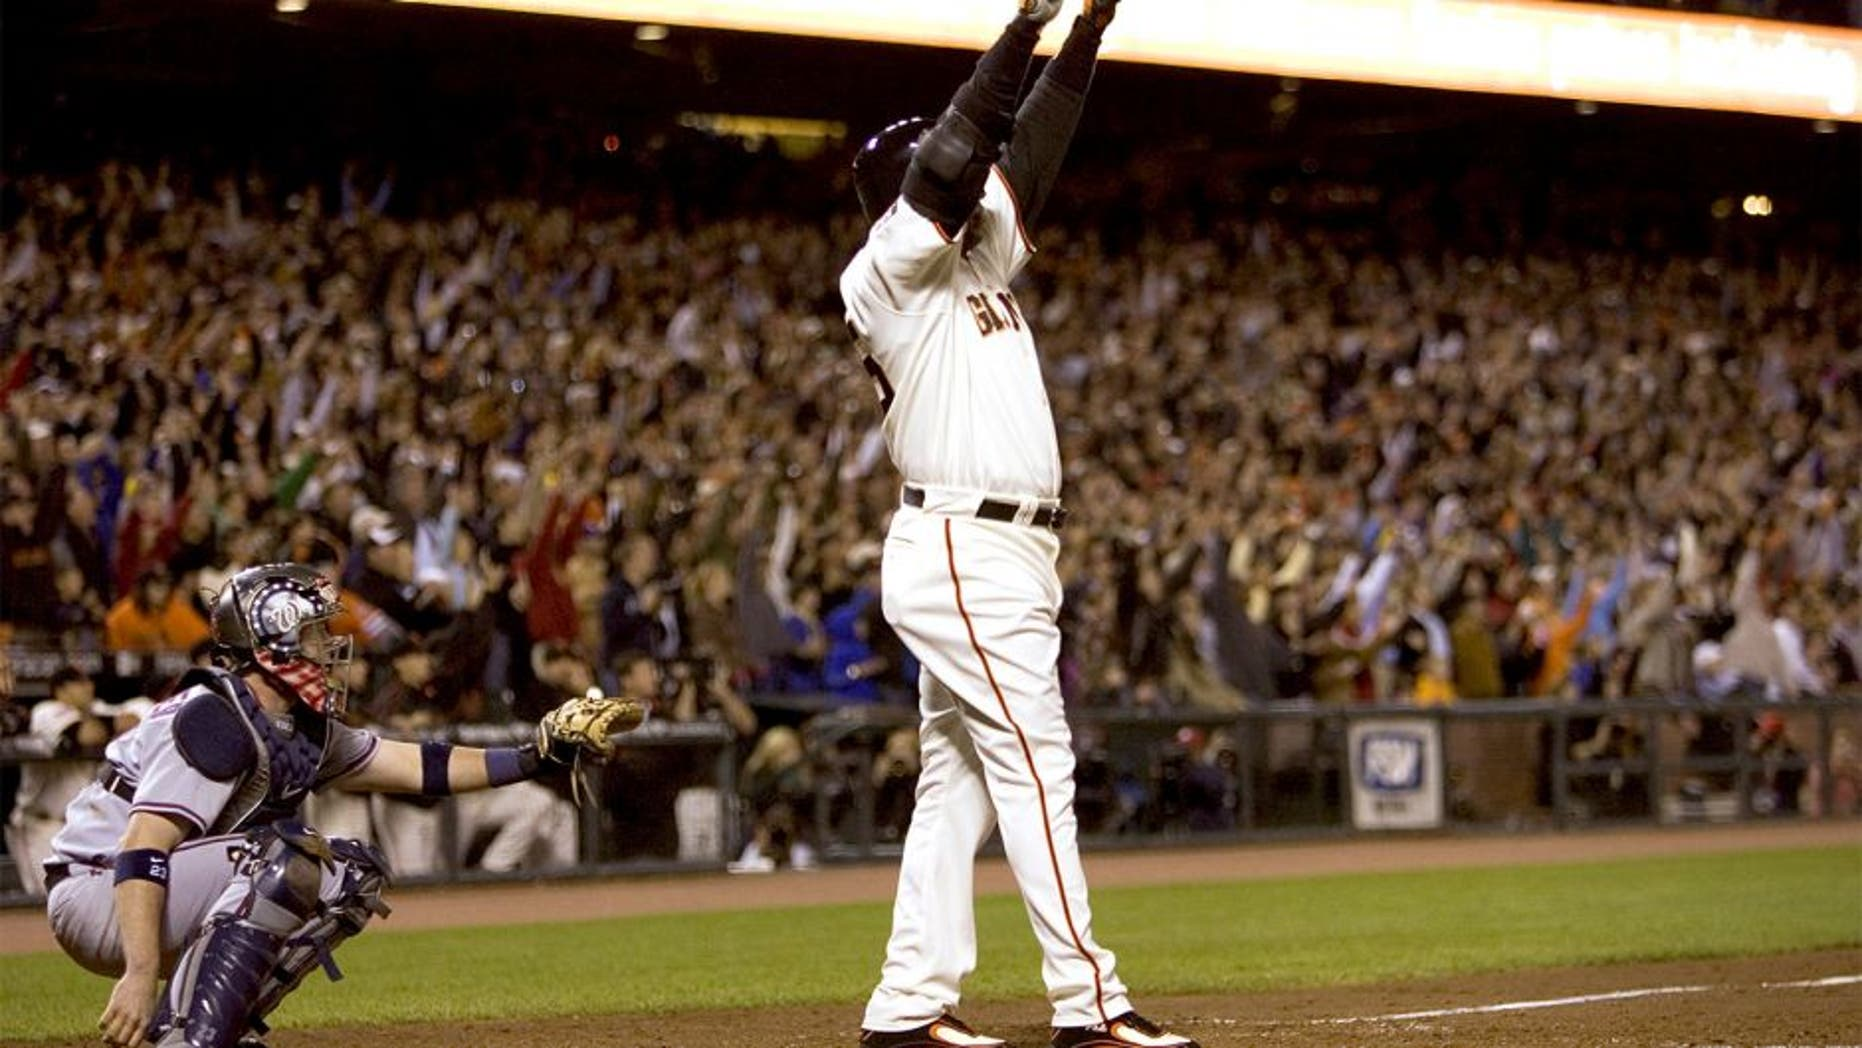 San Francisco Giants' Barry Bonds celebrates home run number 756 to break Hank Aaron's home run record in the fifth inning against the Washington Nationals at AT&T Park in San Francisco California, Tuesday, August 7, 2007. (Paul Kitagaki Jr/Sacramento Bee/MCT)